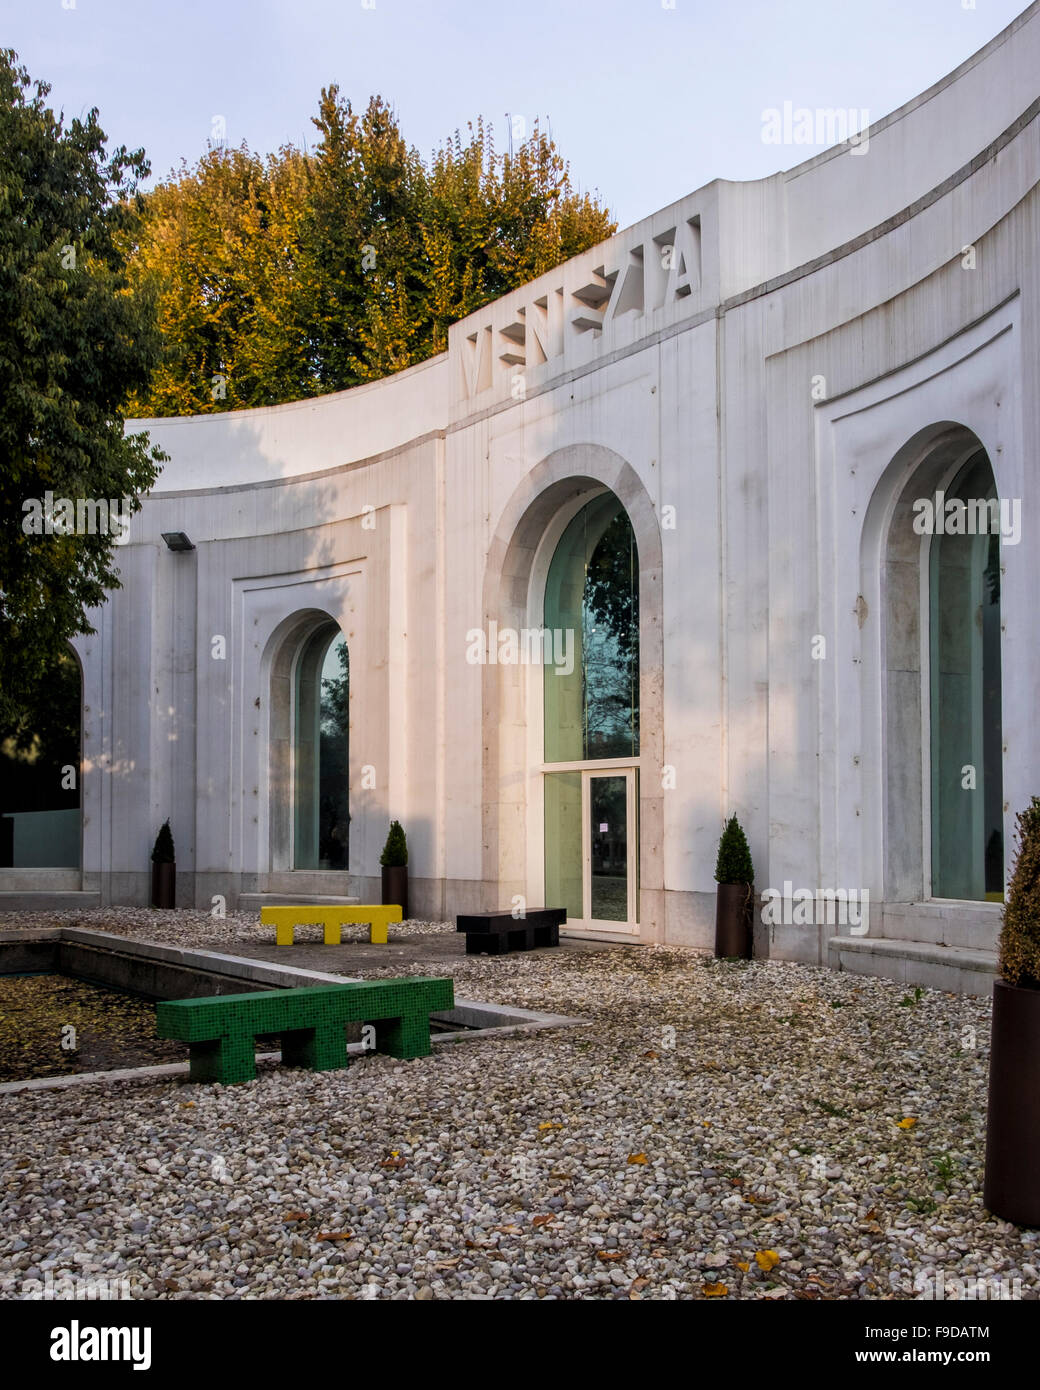 Venetian Pavilion exterior facade and entrance at the 2015 56th Venice Biennale - Stock Image